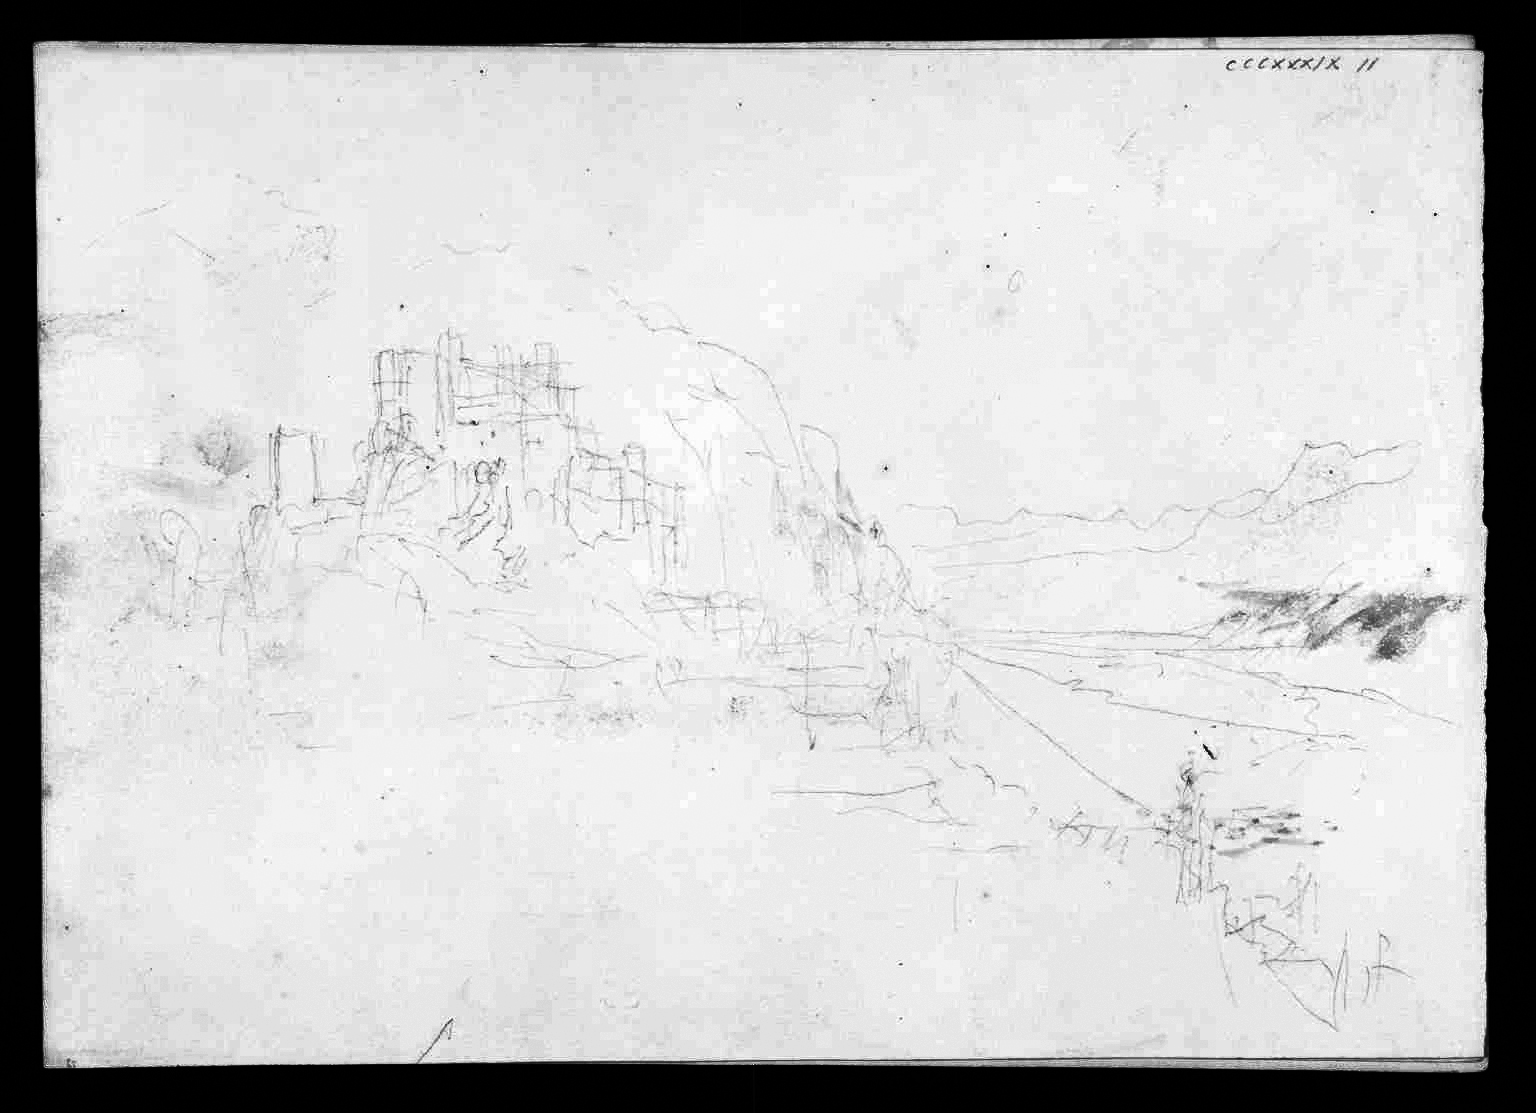 J M W Turner Ruined Castle, with Mountains, 1841?c Pencil with slight touches of watercolour on paper, 227 x 325 mm A page from the 'Mountain Fortress' sketchbook', Tate D33664.Turner Bequest CCCXXXIX 11 Tate Britain, London Self-evidently related to the painting called 'Heidelberg'. But of somewhere else altogether. Photo courtesy of Tate. To view this image in Tate's own catalogue of the Turner bequest, click on the following link, and use your browser's 'back' button to return to this page. http://www.tate.org.uk/art/artworks/turner-ruined-castle-with-mountains-d33664